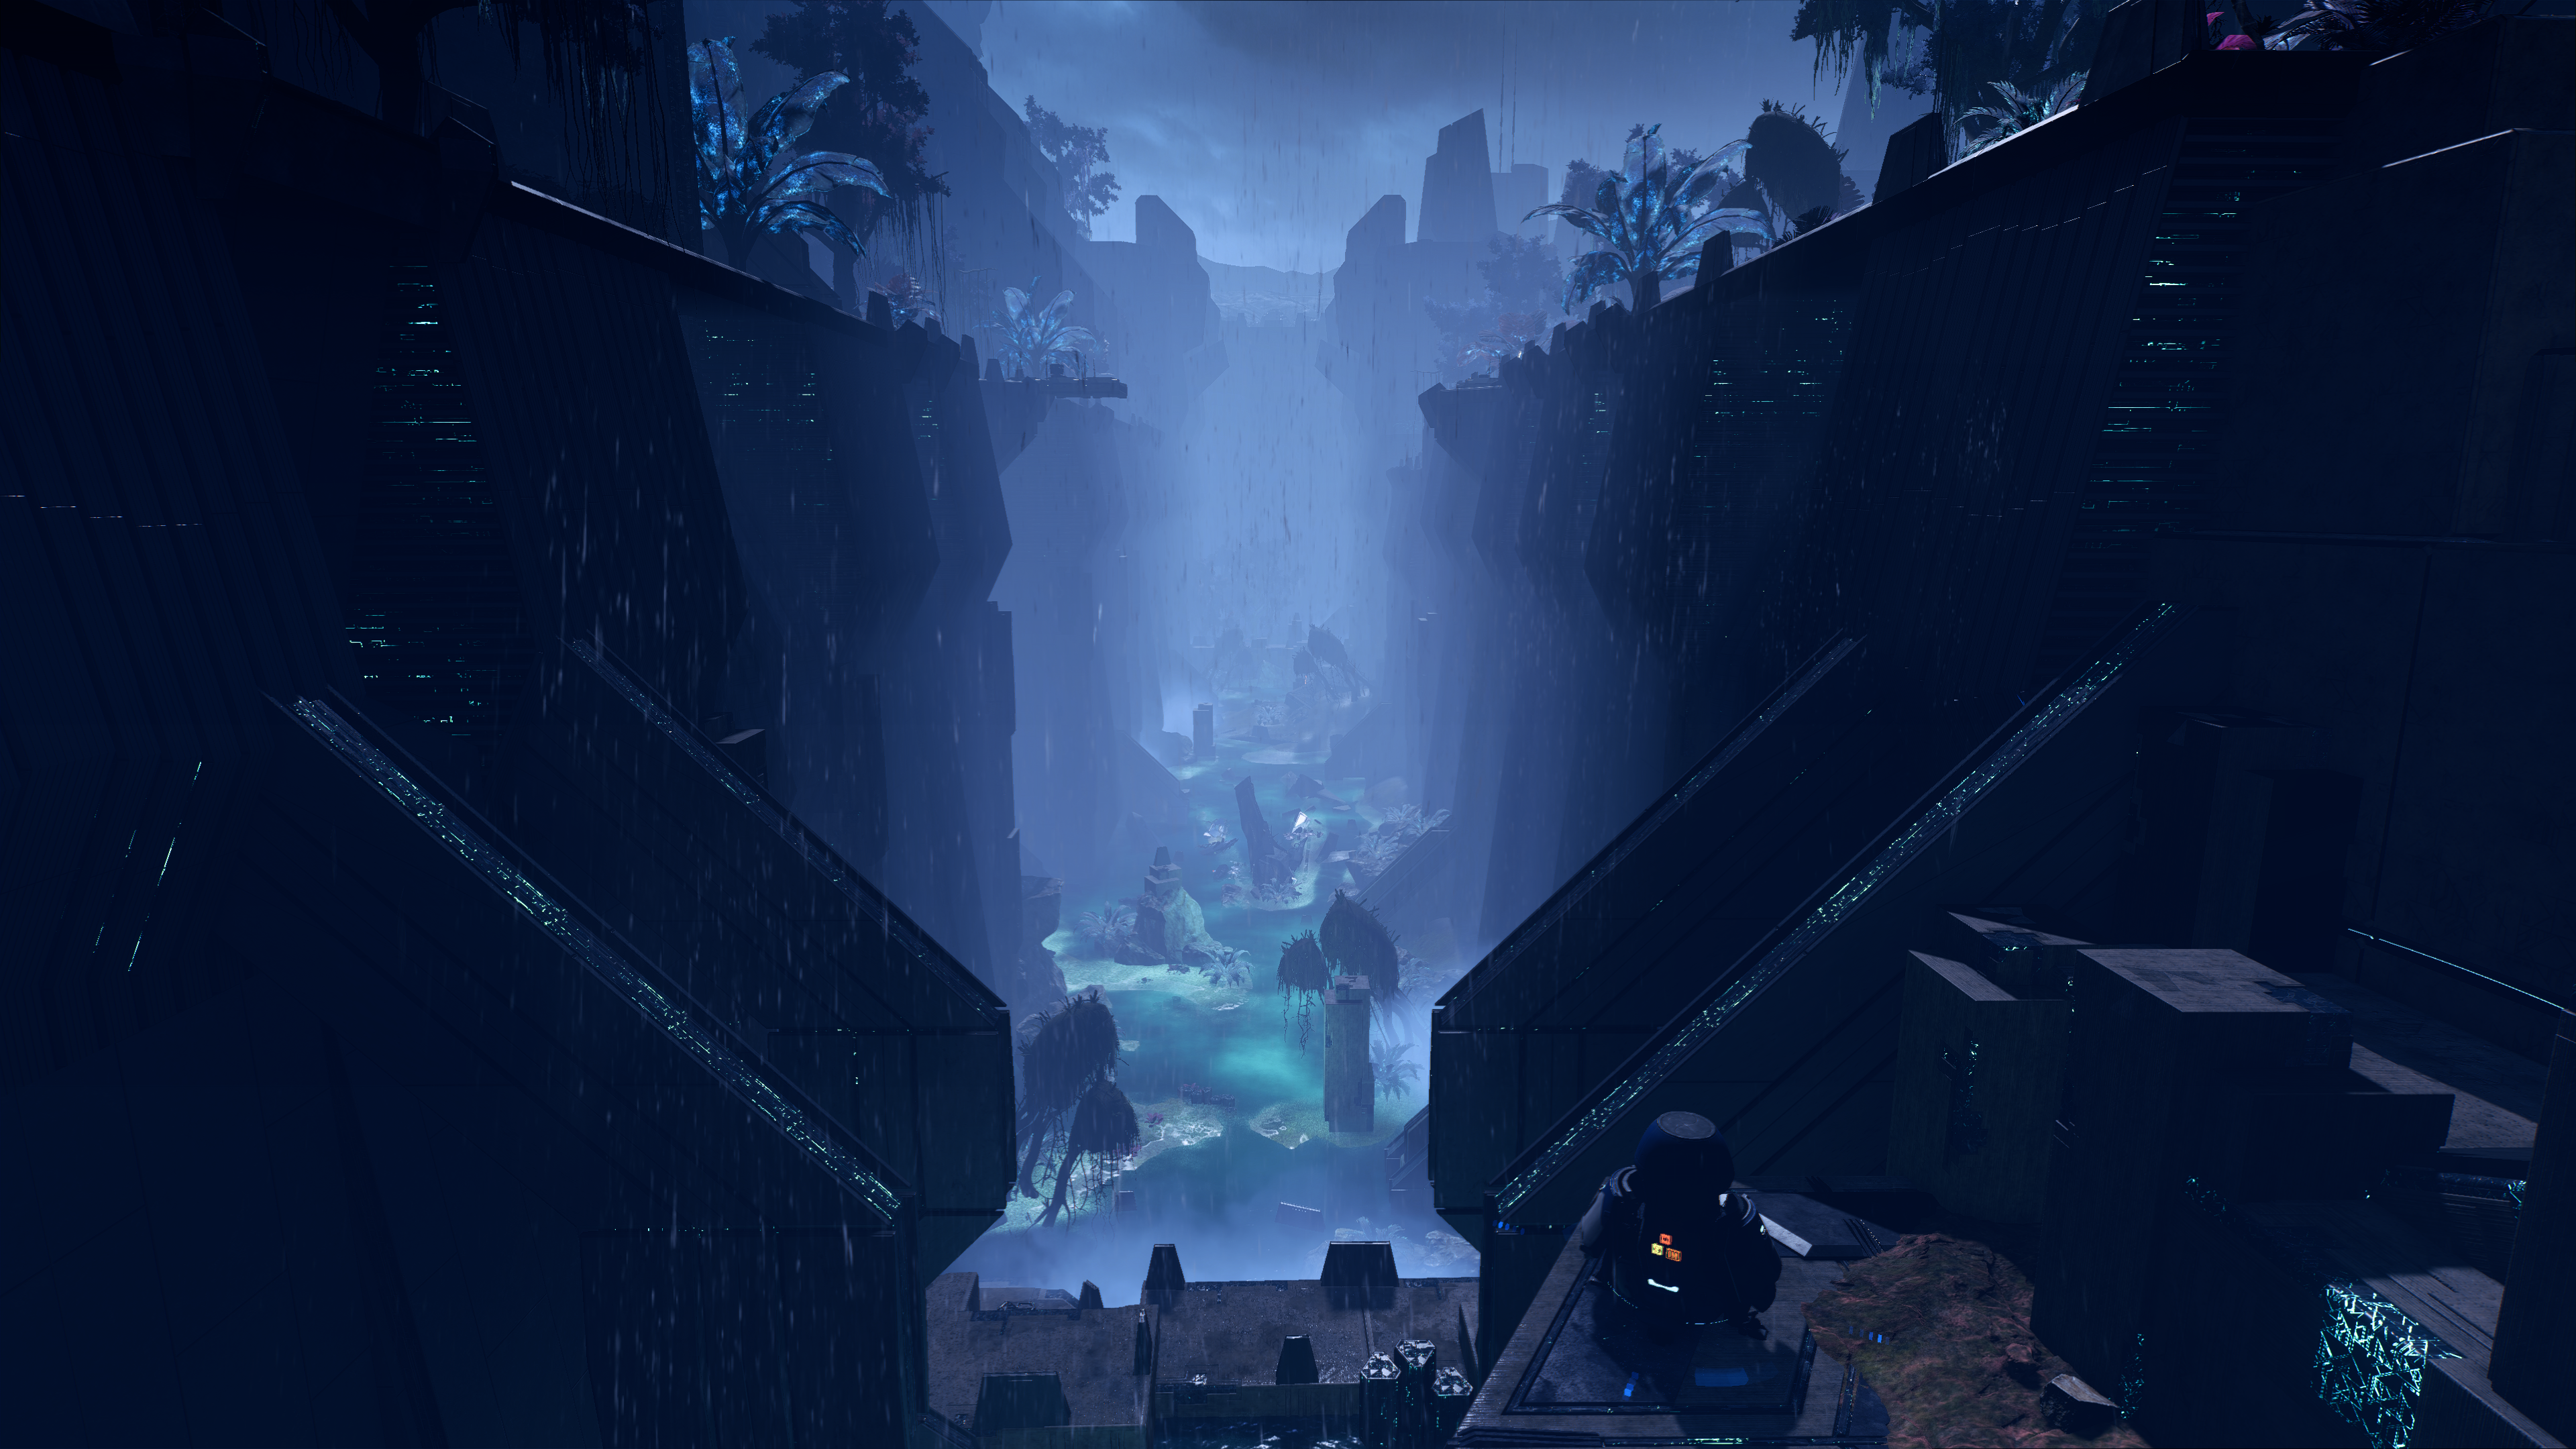 Chasm of the Builders